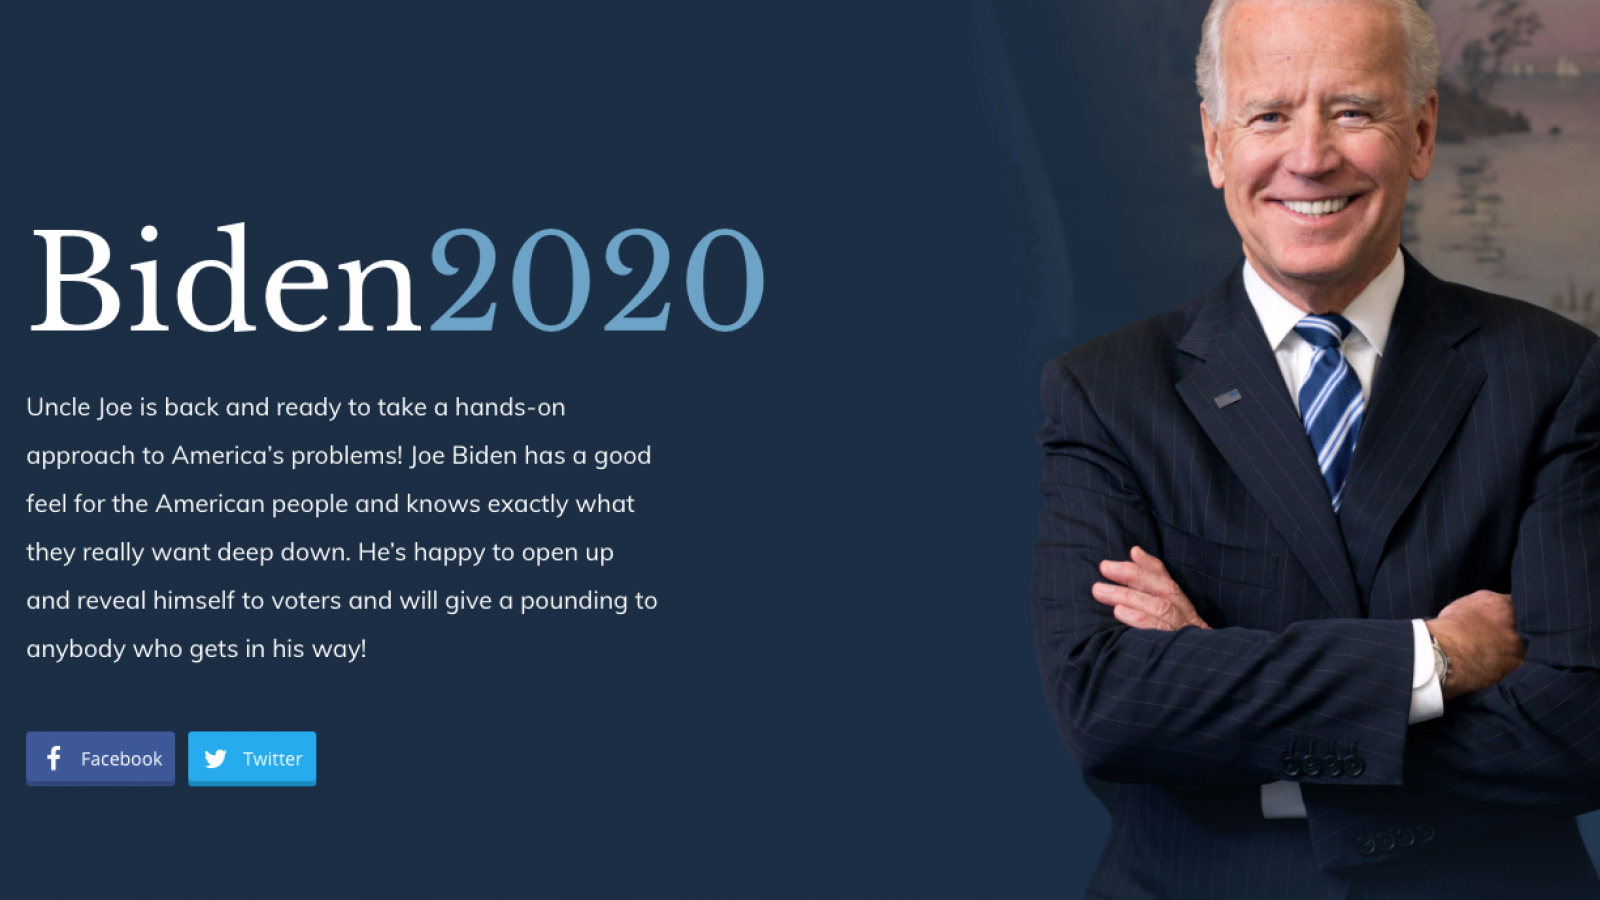 Fake Biden Campaign Website Being Run Secretly By Trump Campaign Operative Report